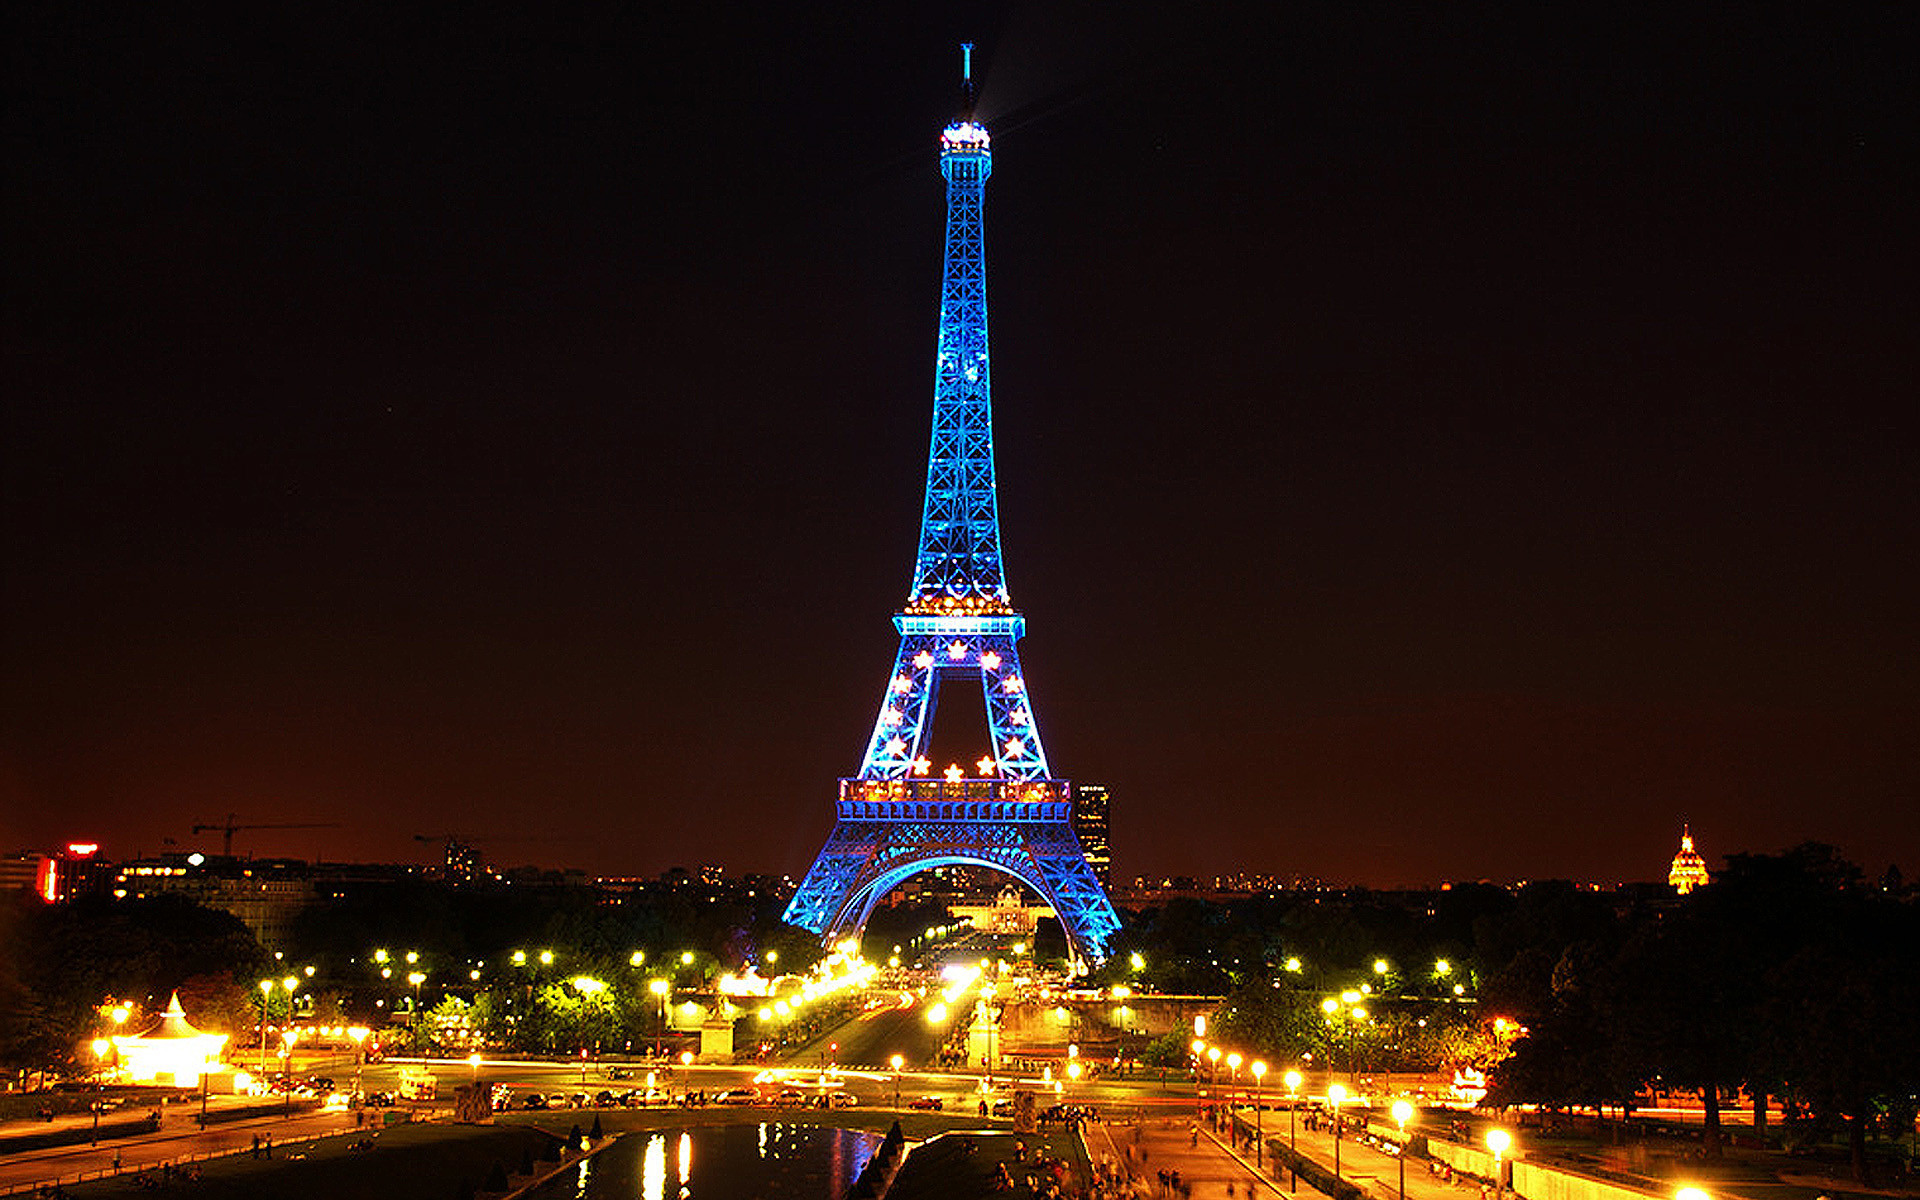 eiffel tower lit up at night full hd wallpaper and. Black Bedroom Furniture Sets. Home Design Ideas